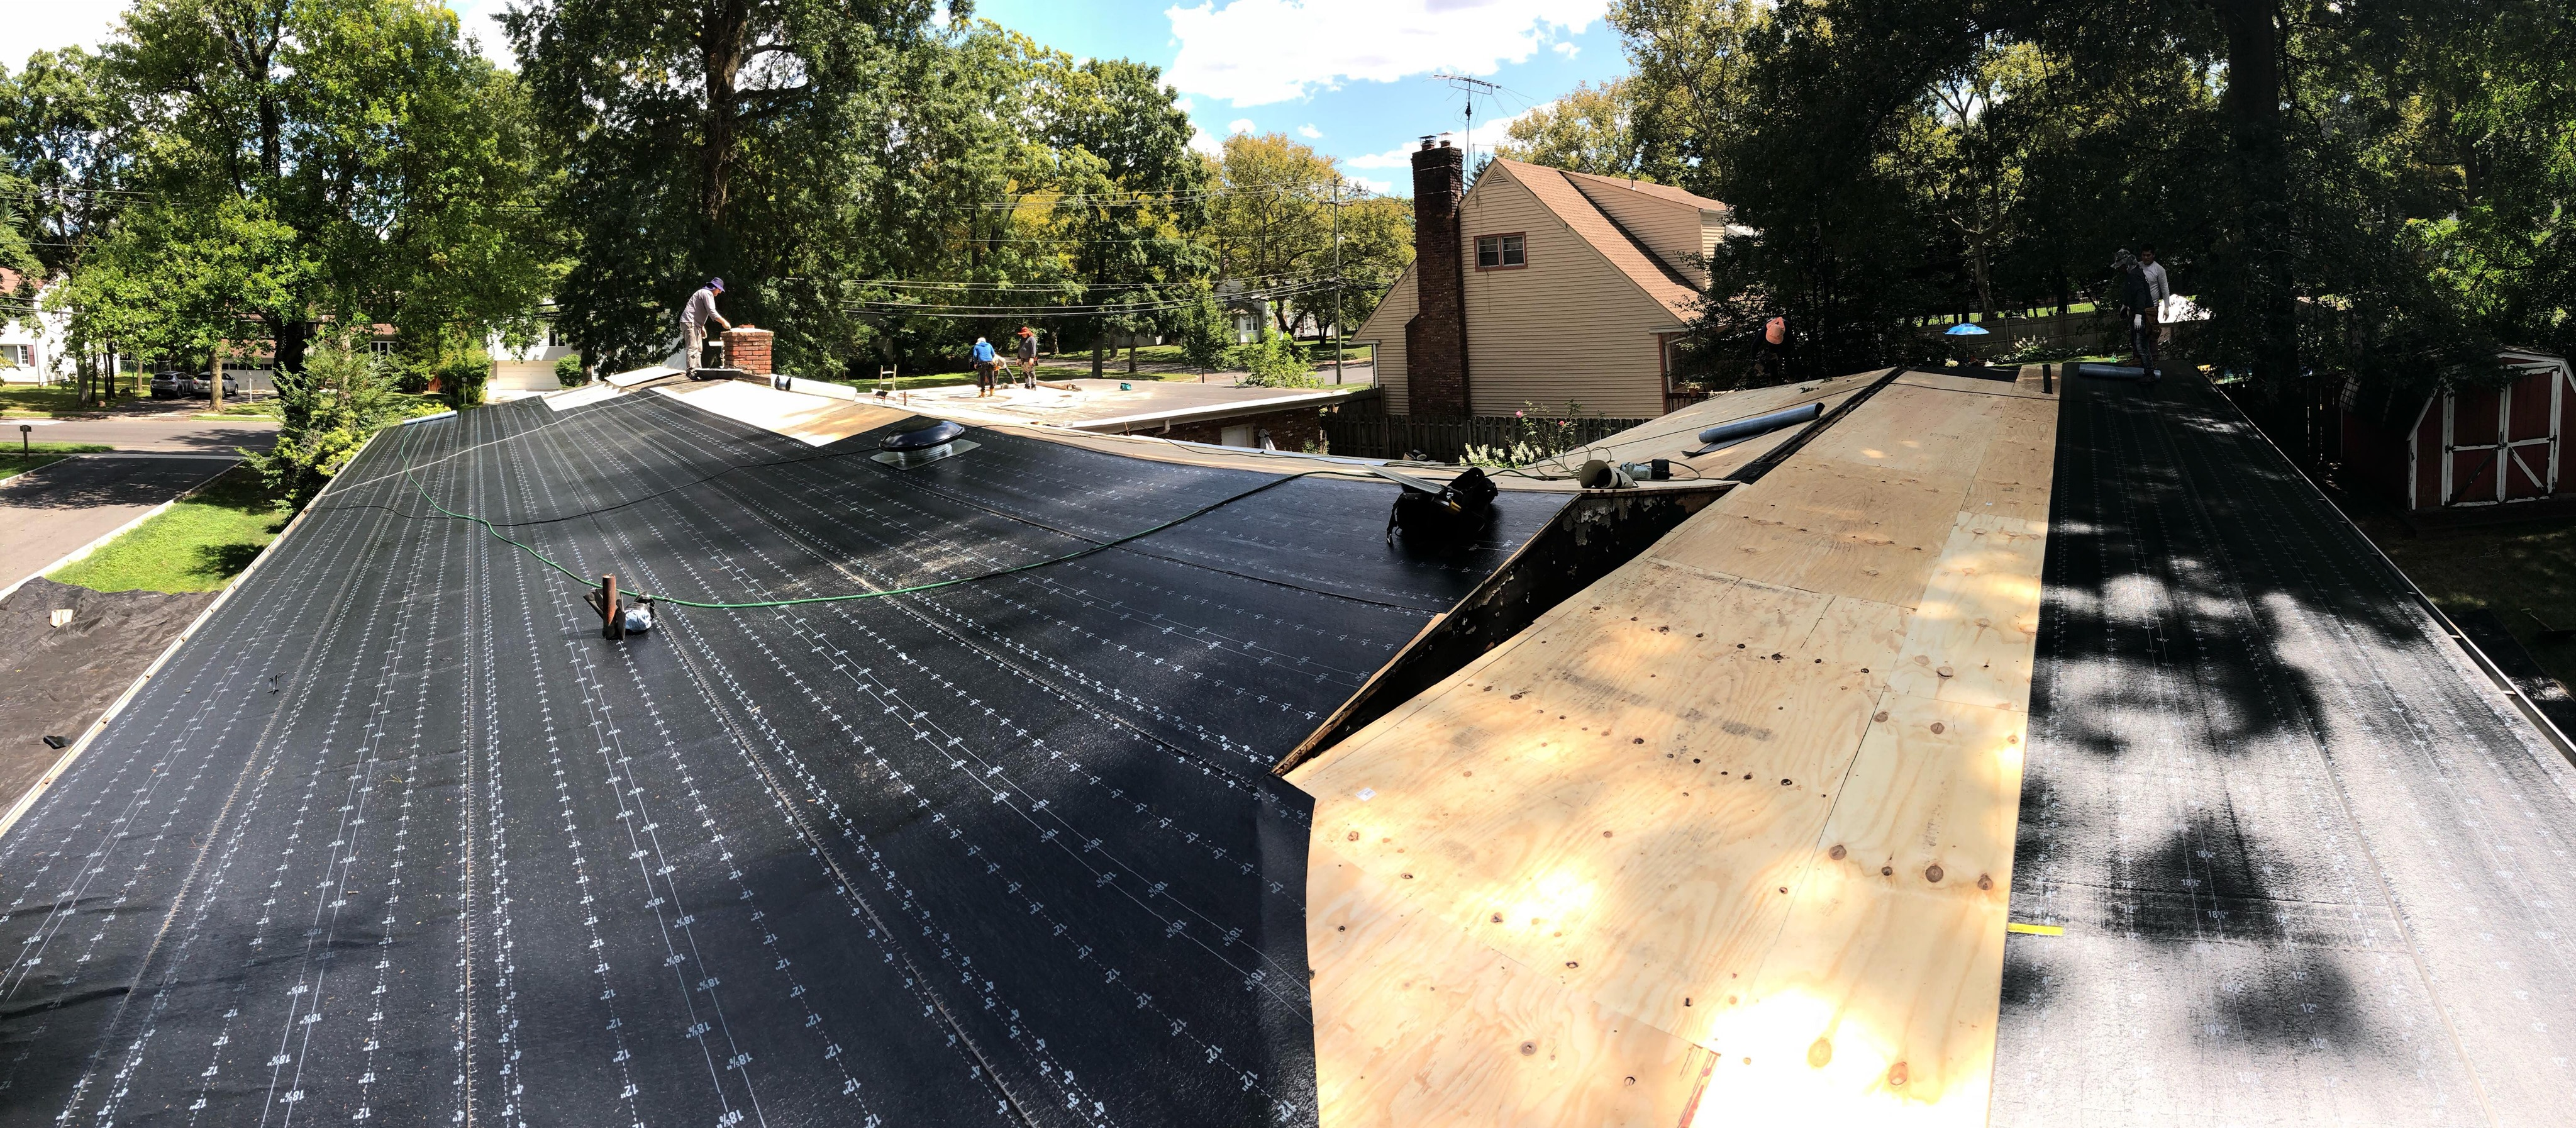 Roofing Installation in Creskill Nj Cephalo Roofing